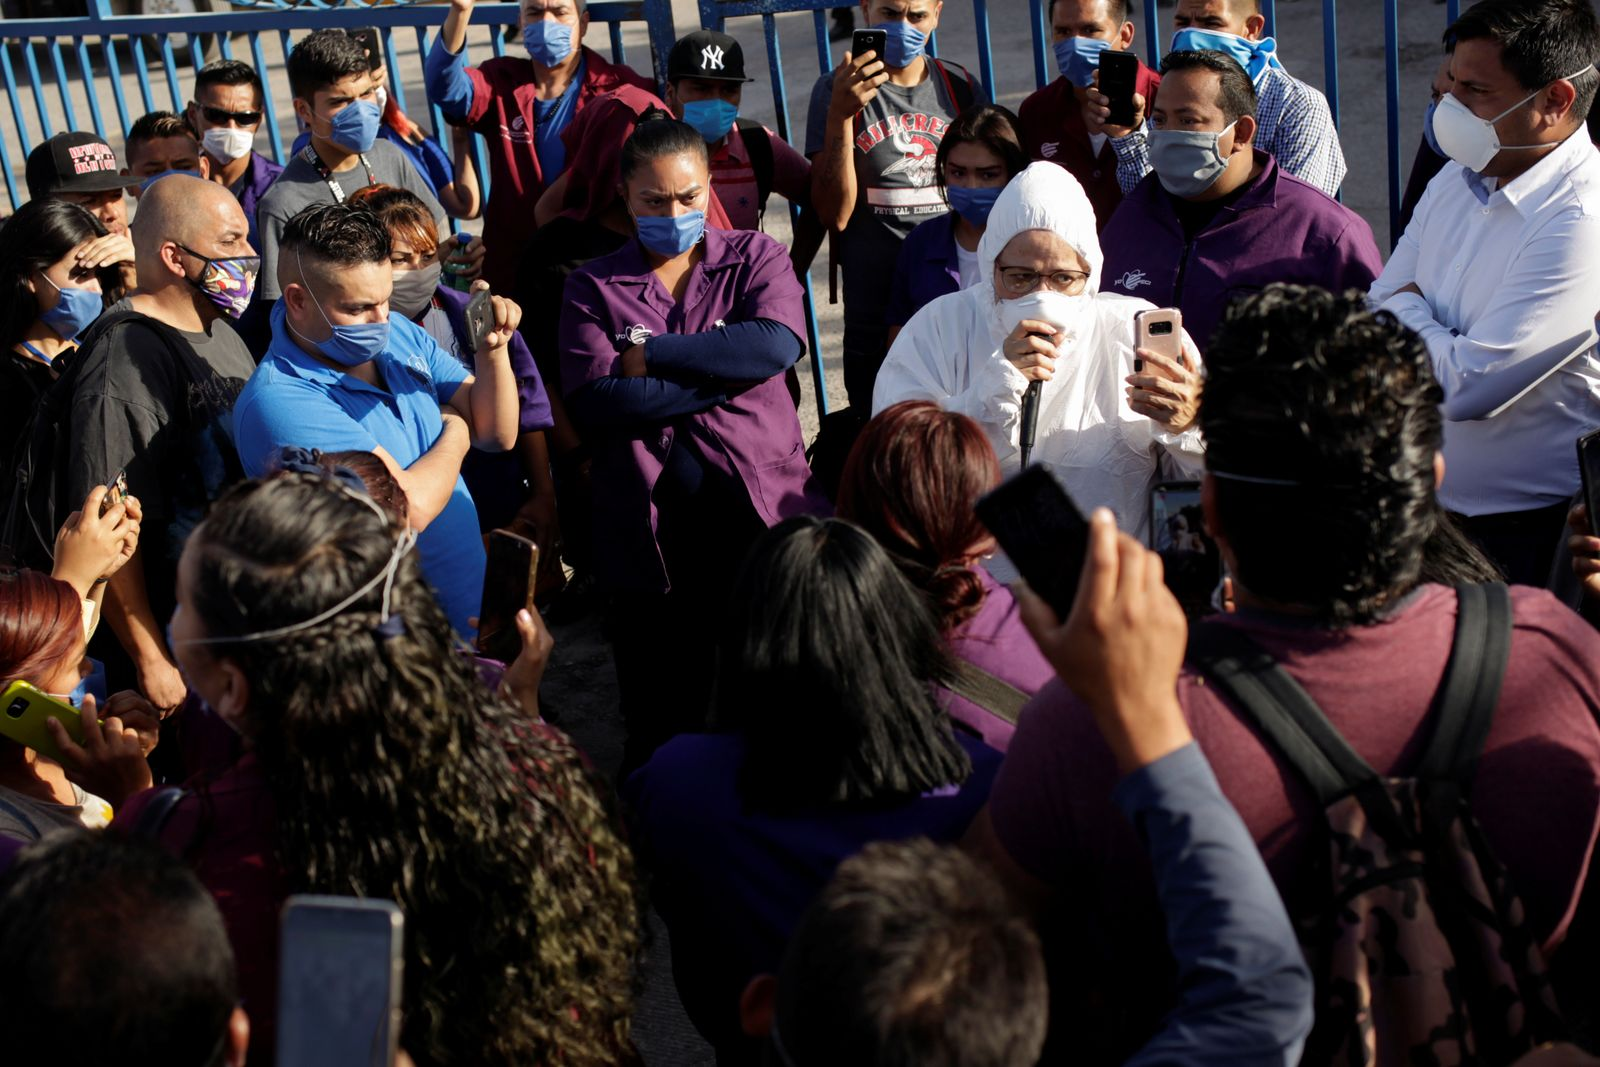 Susana Prieto, a lawyer and labor activist, advises employees of an Electrocomponentes de Mexico factory during a protest to halt work amid the spread of the coronavirus disease (COVID-19), in Ciudad Juarez